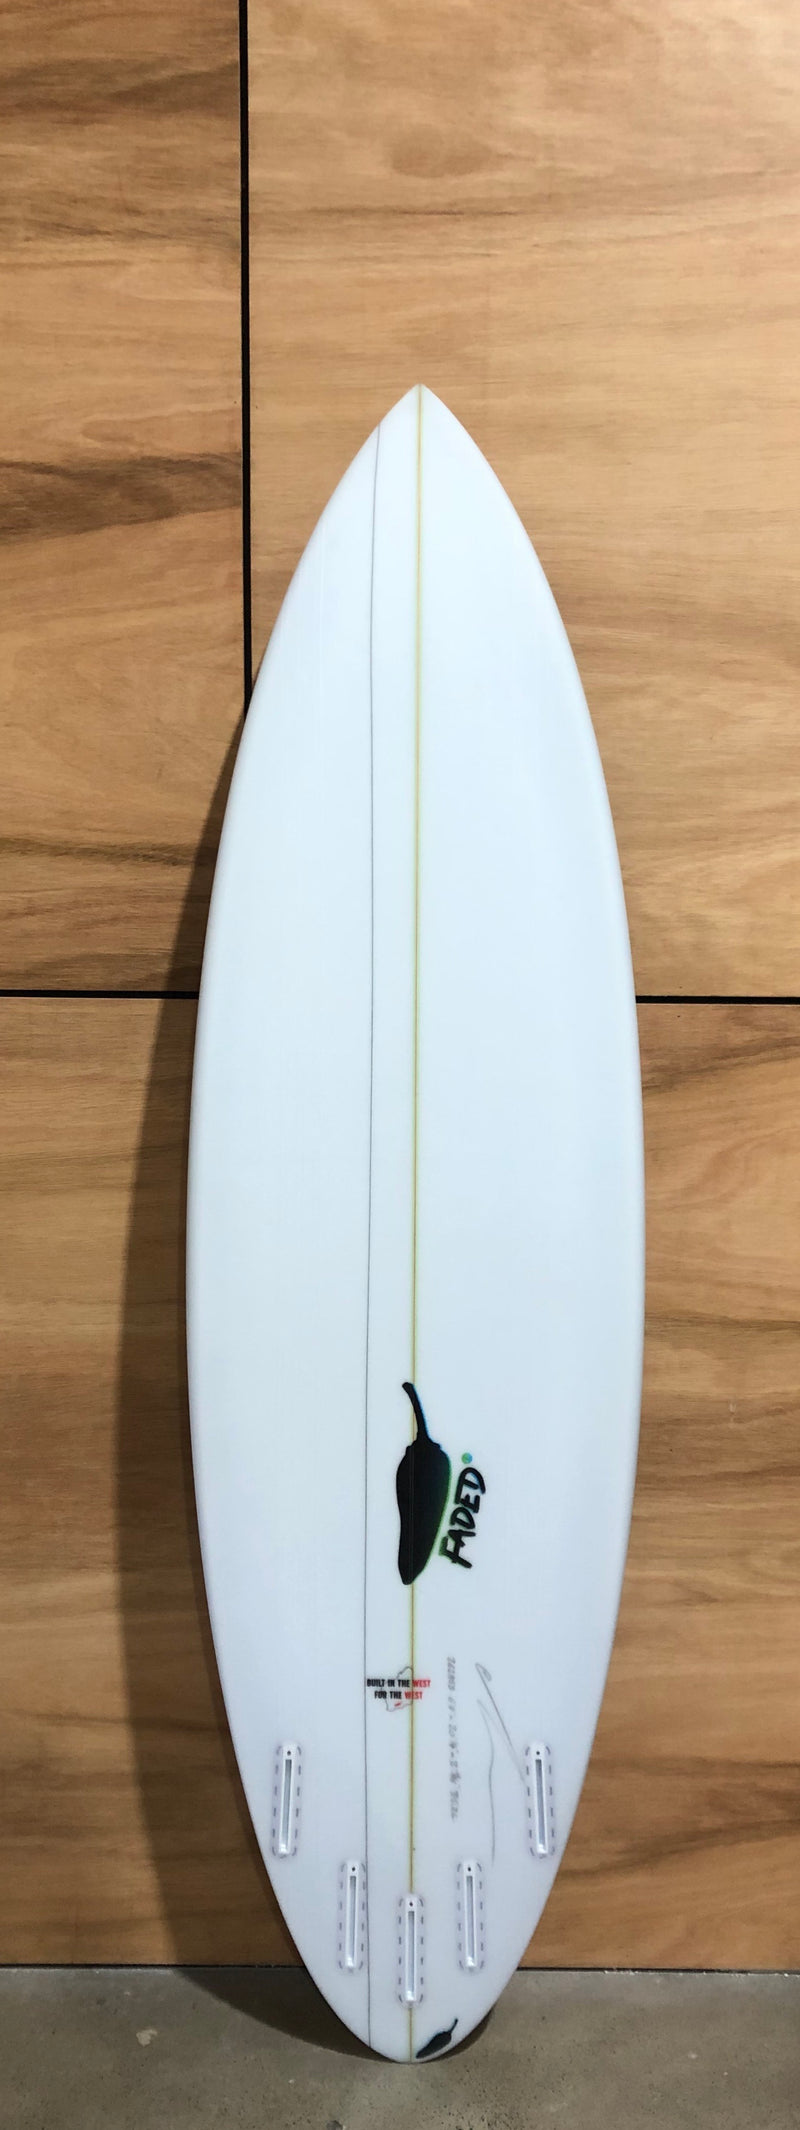 Chilli Faded 2.0 - Built In The West - Board Store ChilliSurfboard